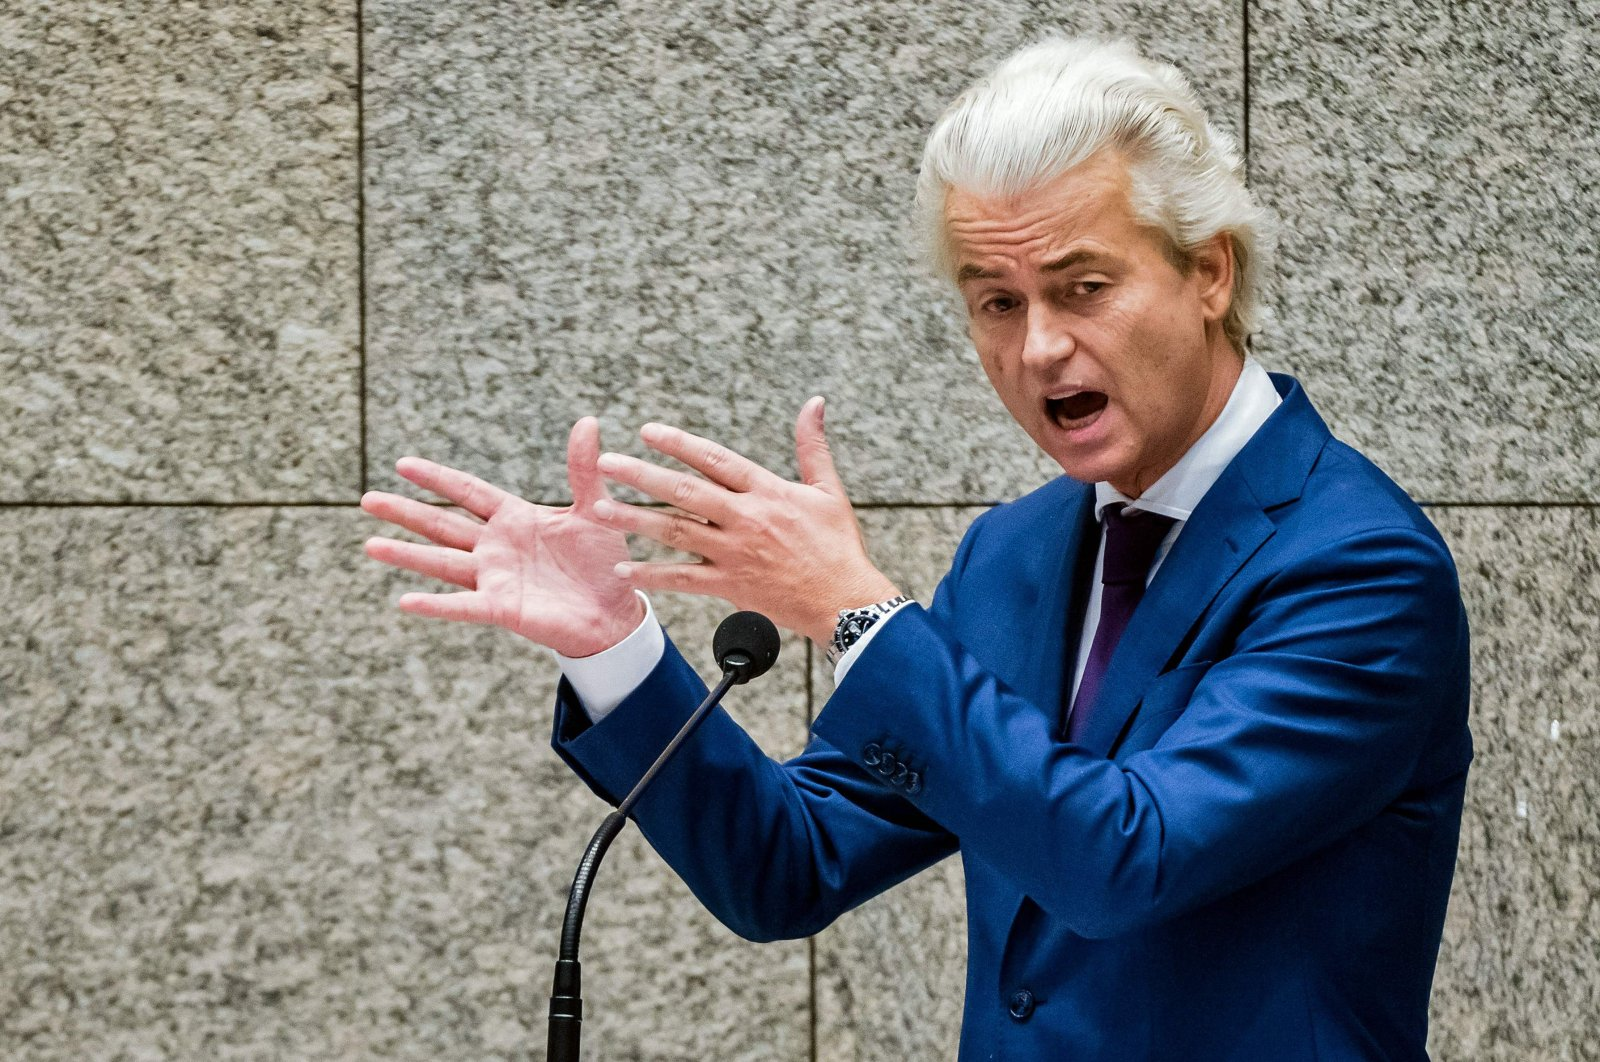 Leader of the Dutch far-right Party for Freedom (PVV) Geert Wilders speaks during a debate over developments surrounding the COVID-19 outbreak, during a plenary session in the House of Representatives in The Hague on Oct. 14, 2020. (AFP Photo)